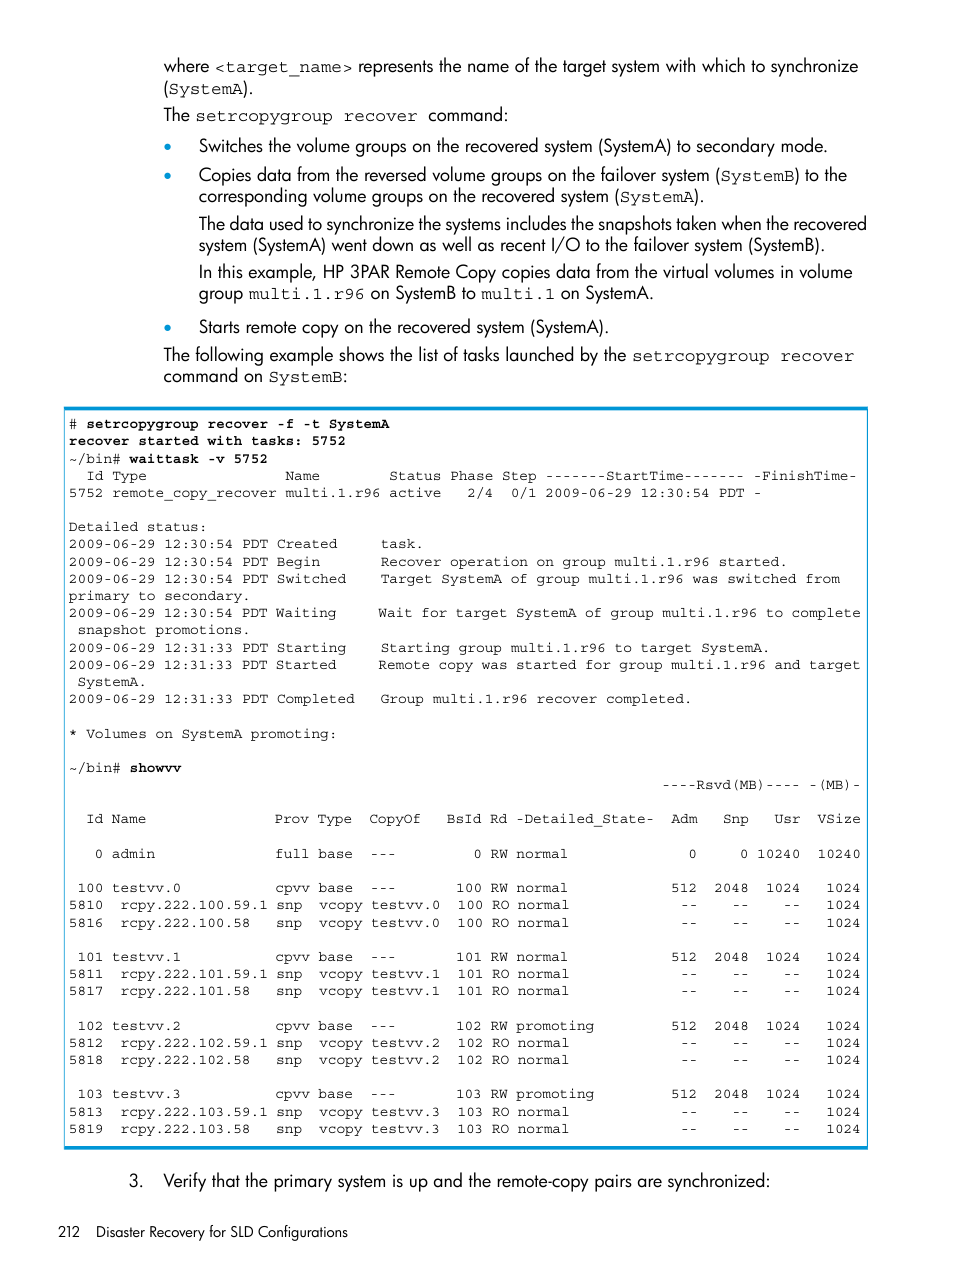 HP 3PAR Operating System Software User Manual | Page 212 / 289